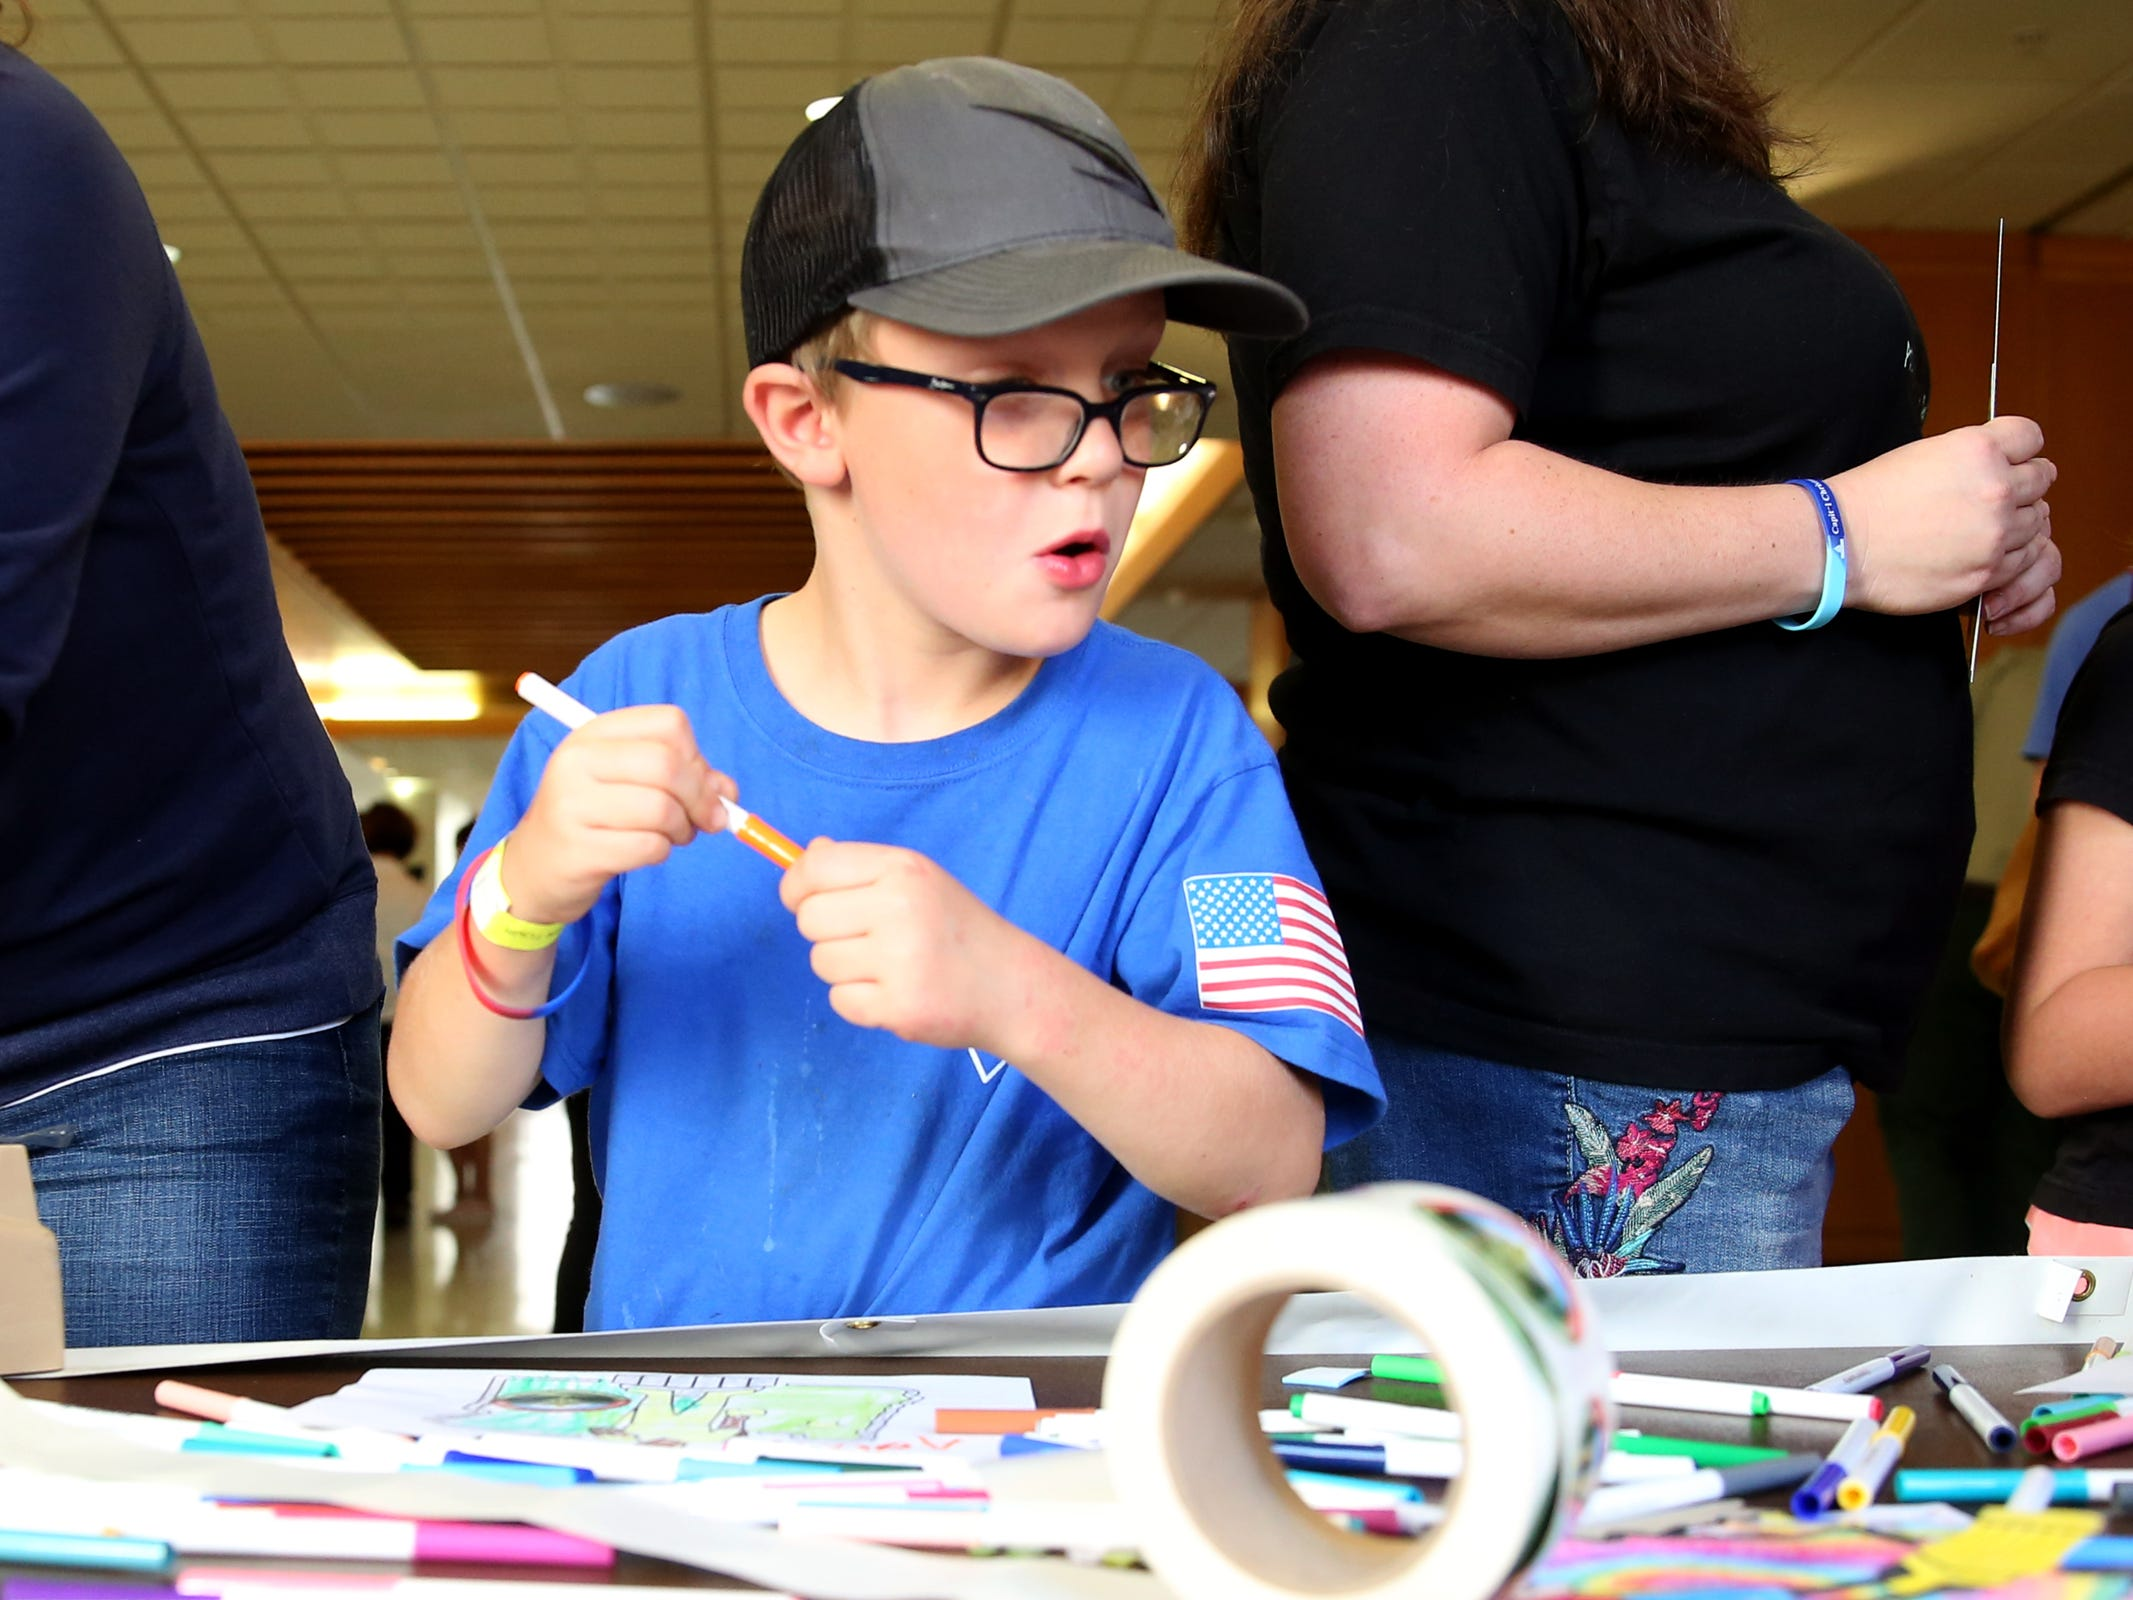 Adam Sheldon, 7, of Salem, colors during an 80th birthday party for the Oregon Pioneer, aka the Gold Man, at the Oregon State Capitol in Salem on Tuesday, Sep. 18, 2018.